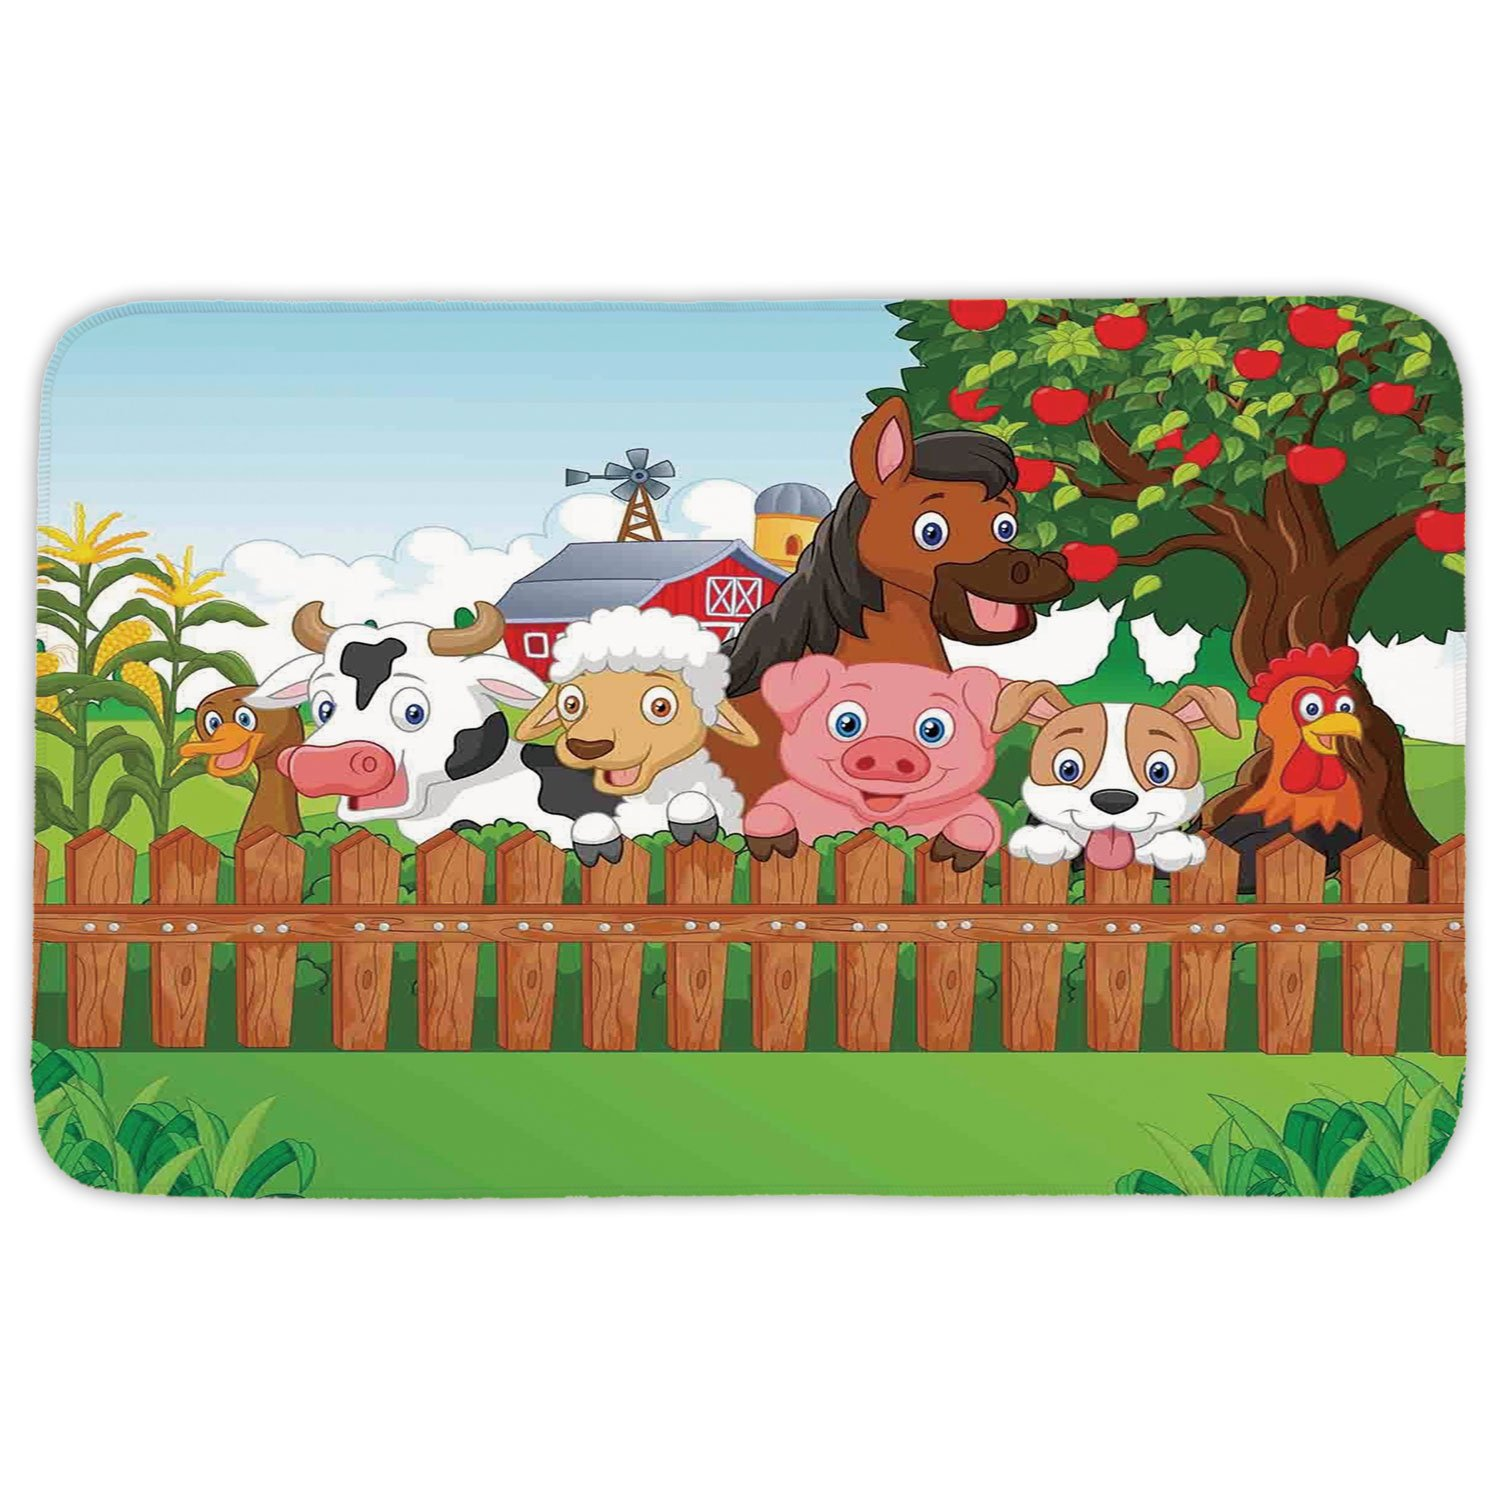 Rectangular Area Rug Mat Rug,Cartoon,Cute Farm Animals on the Fence Comic Mascots with Dog Cow Horse for Kids Decor Decorative,Multi,Home Decor Mat with Non Slip Backing